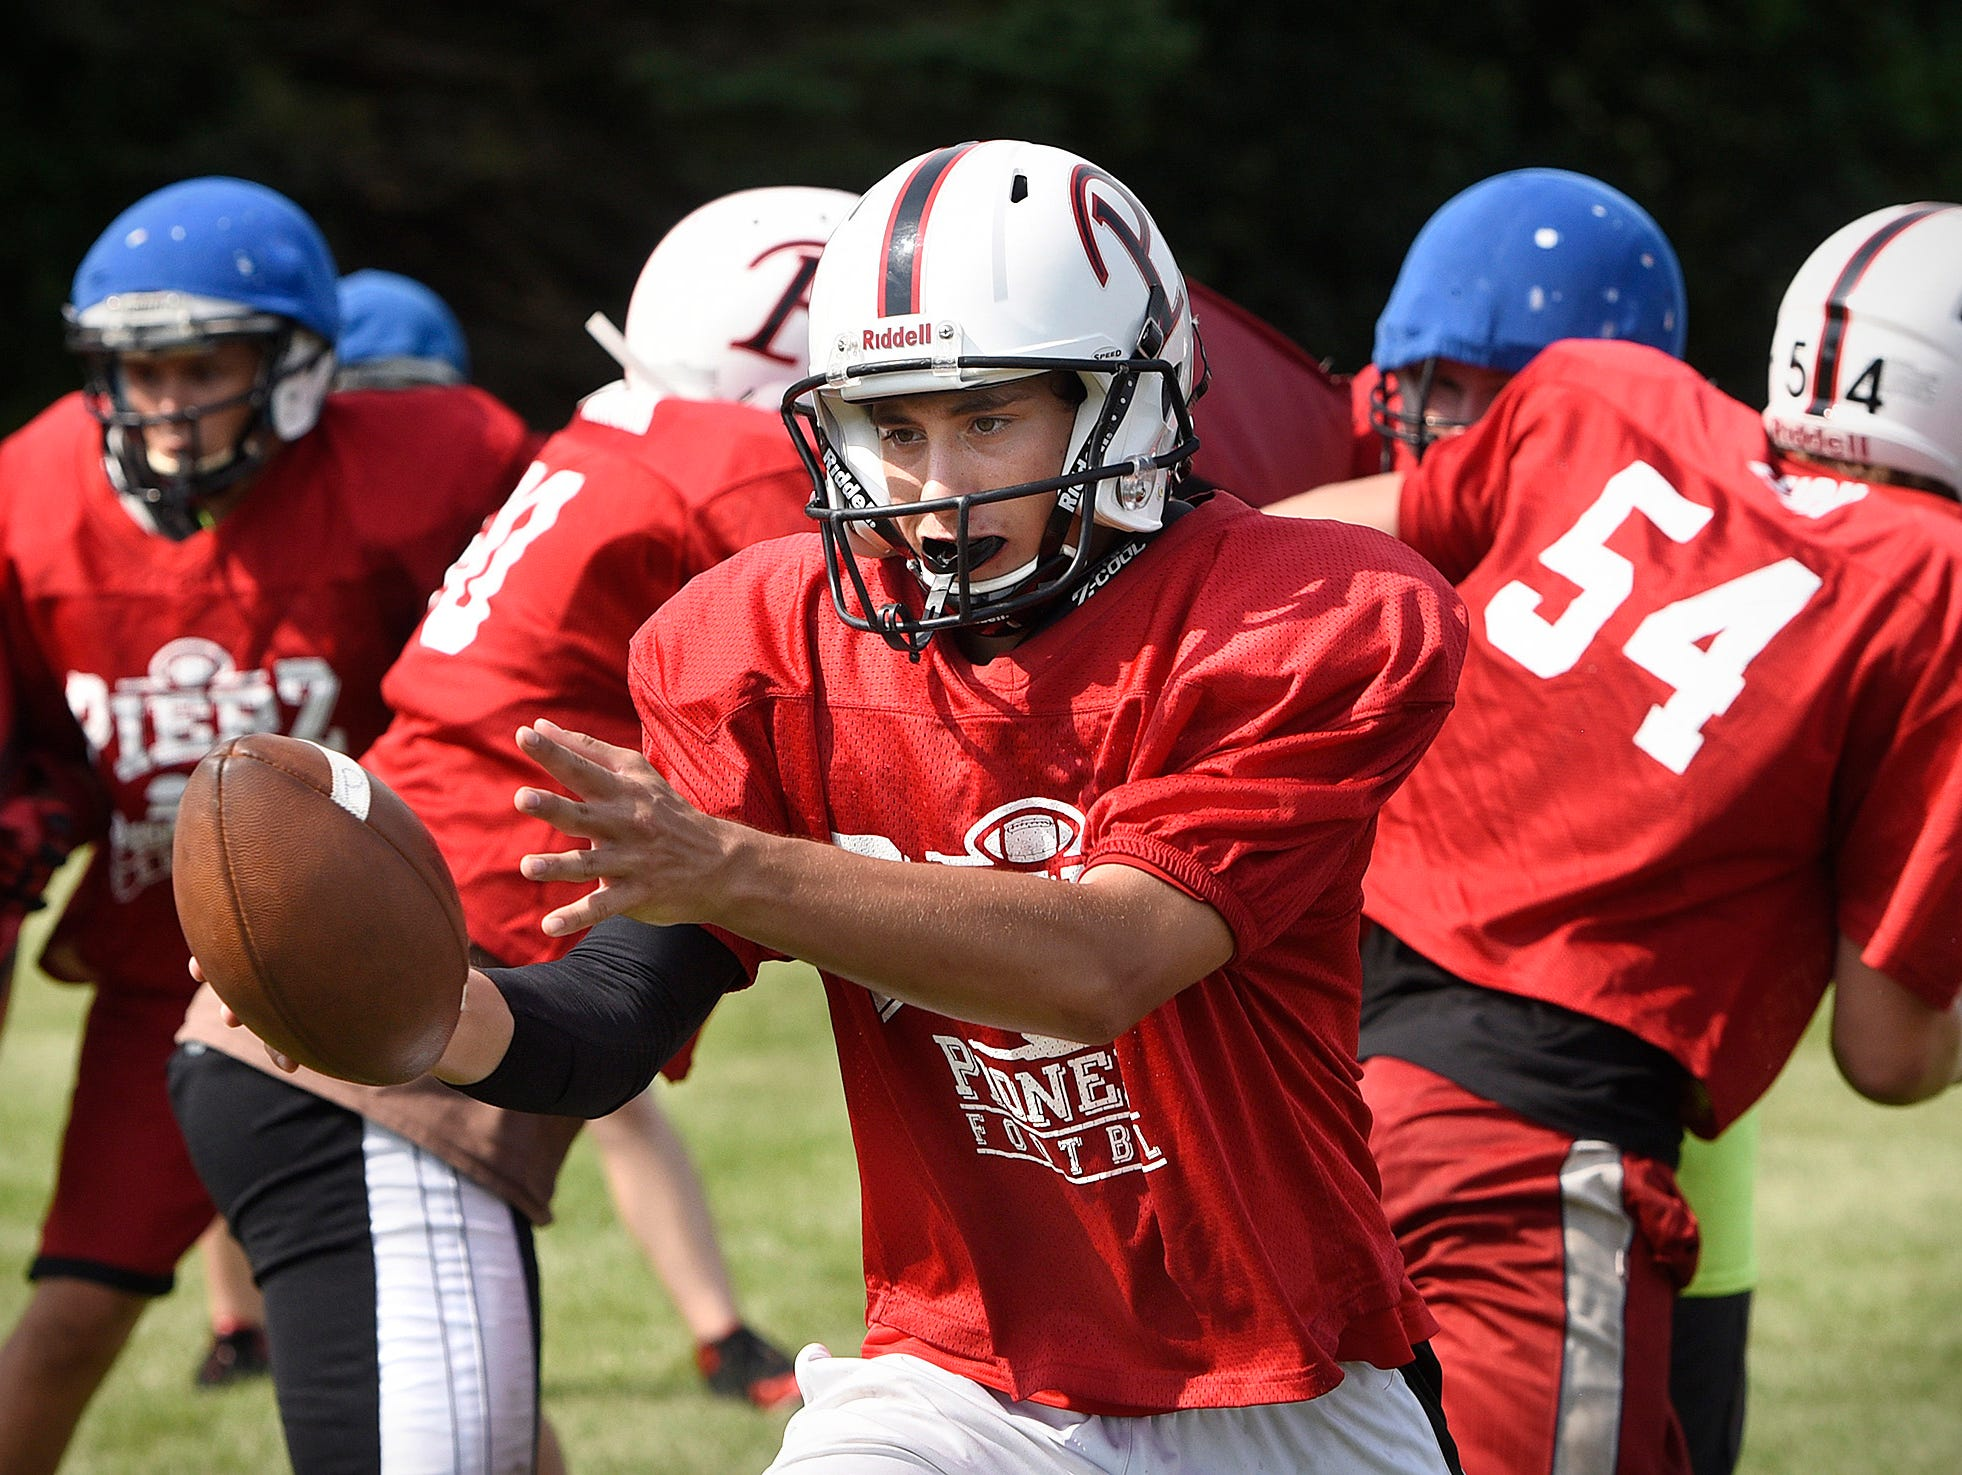 Aaron Weber turns to hand the ball off to a running back during practice for Pierz in the preseason. Weber sprained his ankle in the section championship game and did not play in the state quarterfinals.